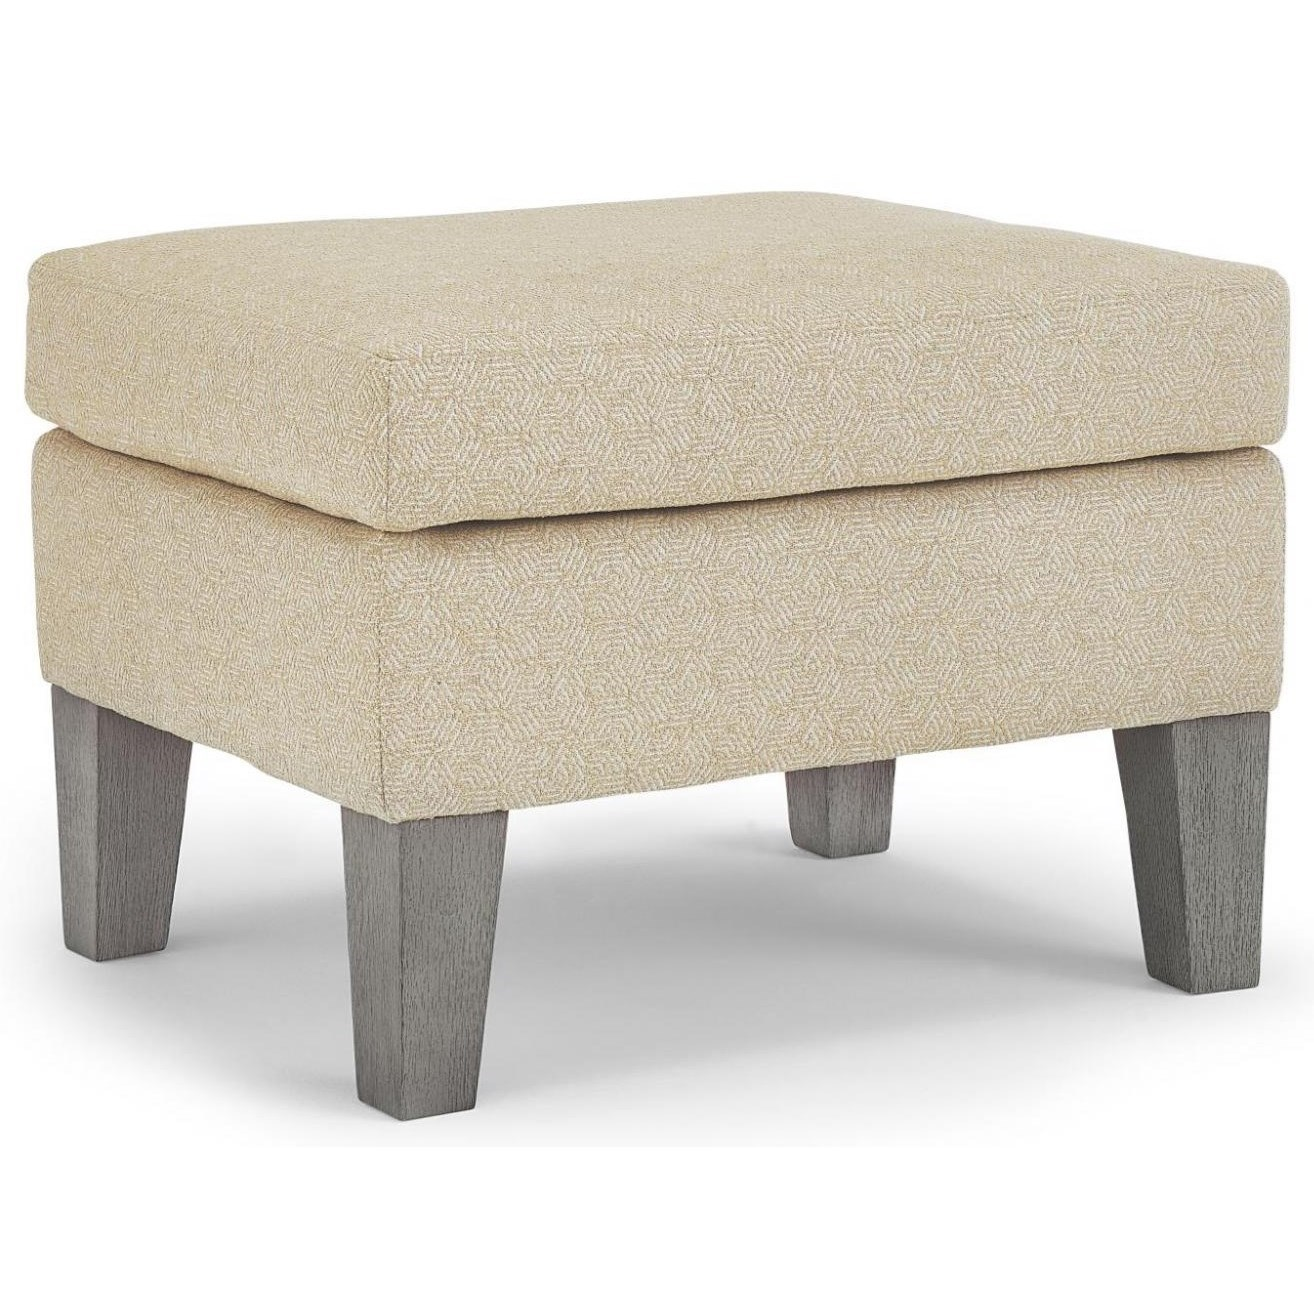 0008 Ottoman by Best Home Furnishings at Virginia Furniture Market